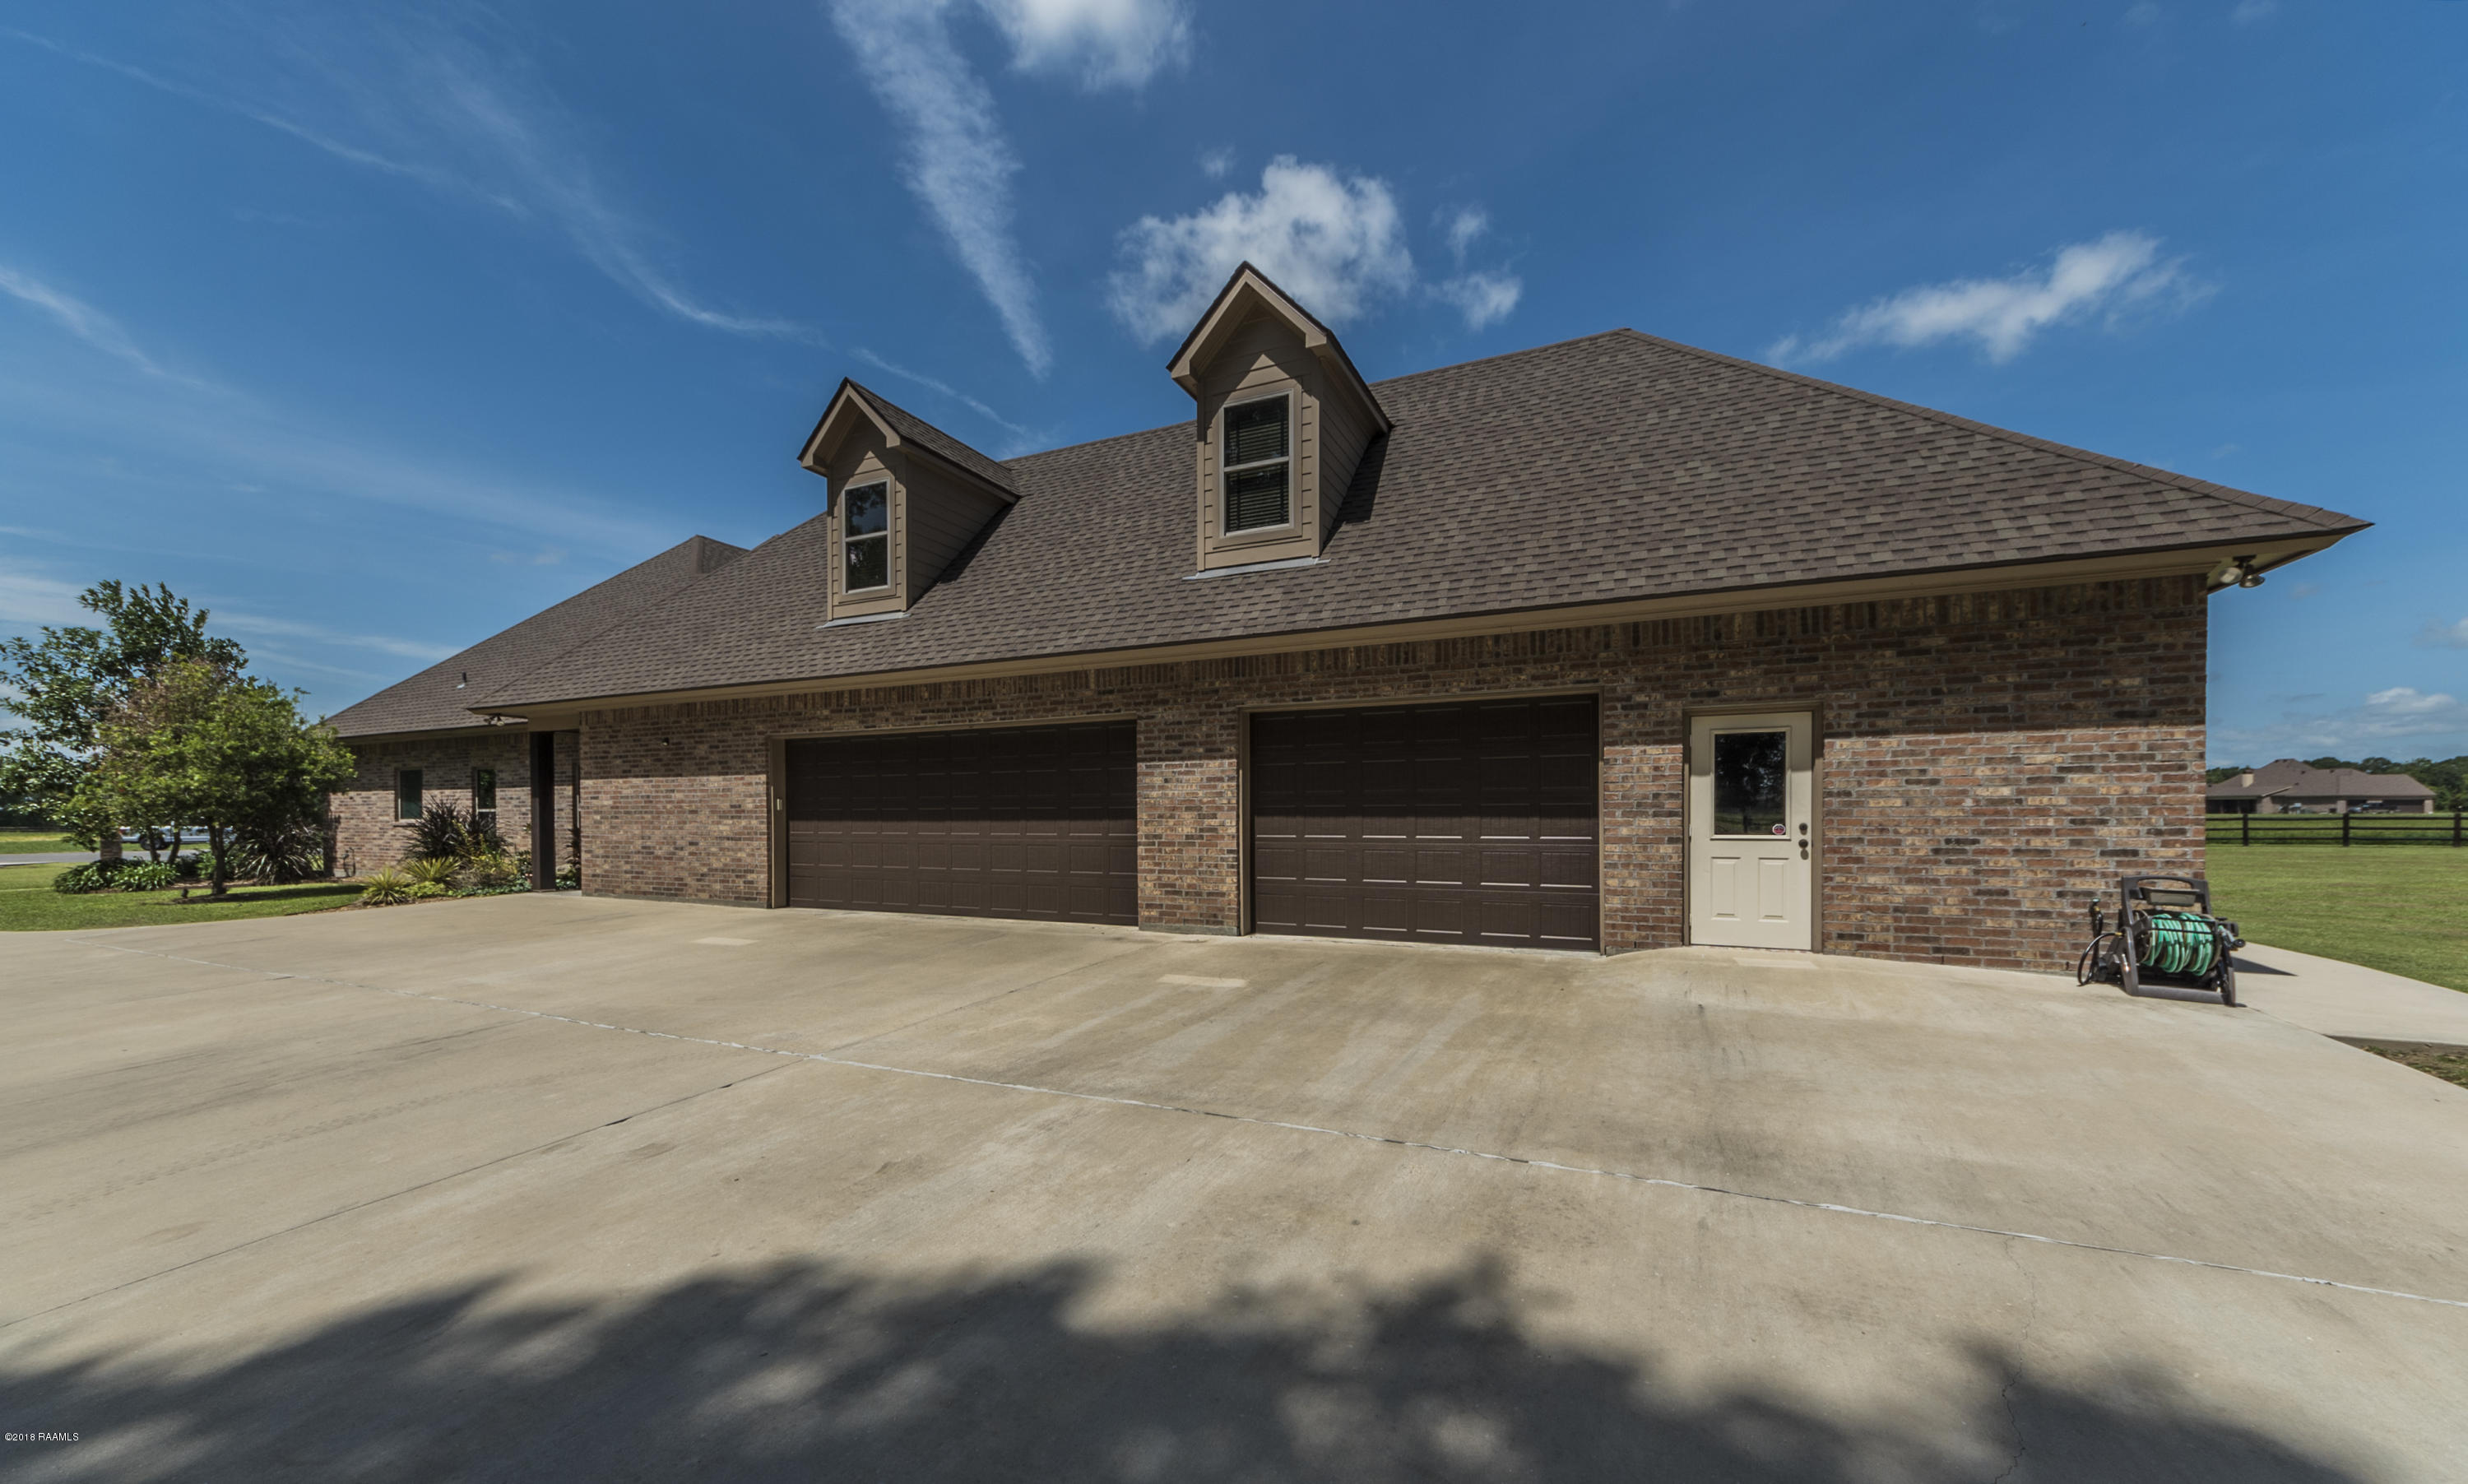 104 Saddle Drive, Opelousas, LA 70570 Photo #40